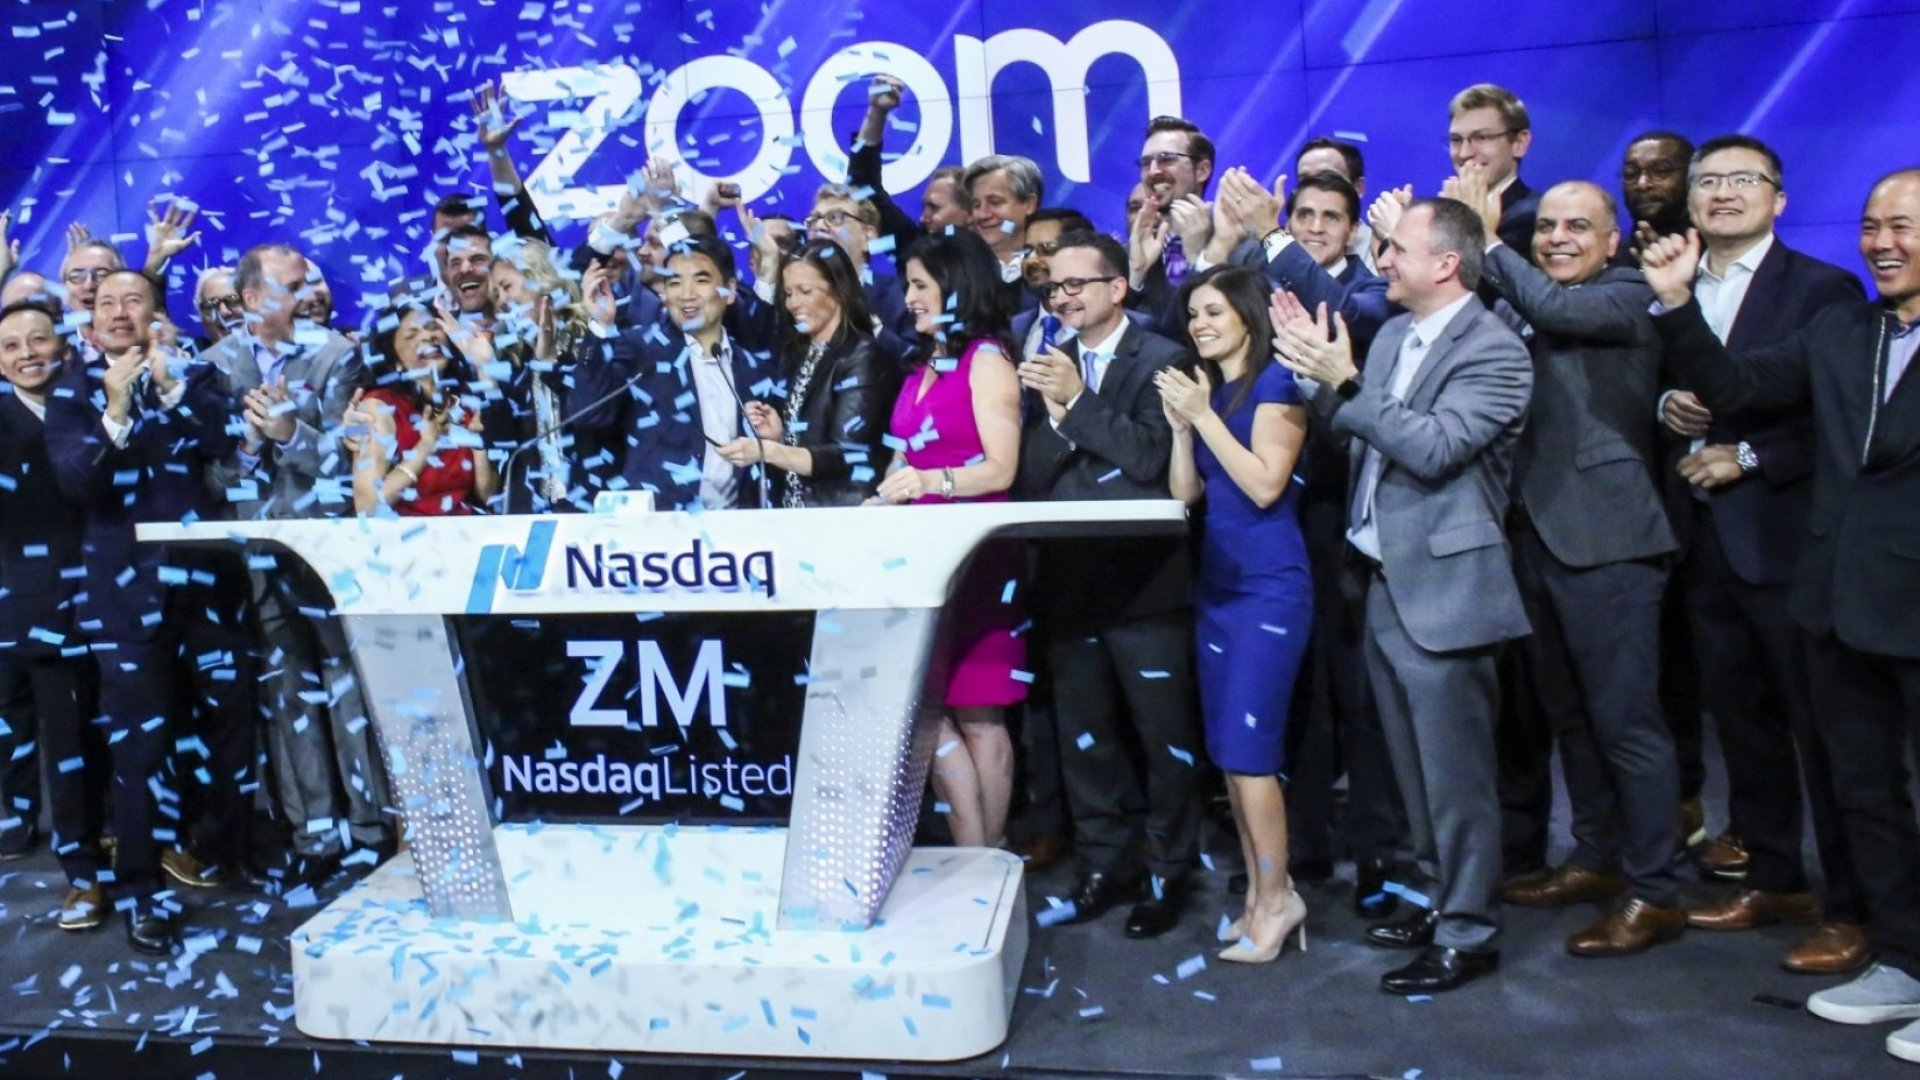 Want to Invest in the Zoom IPO? Make Sure You Buy ZM, Not ZOOM